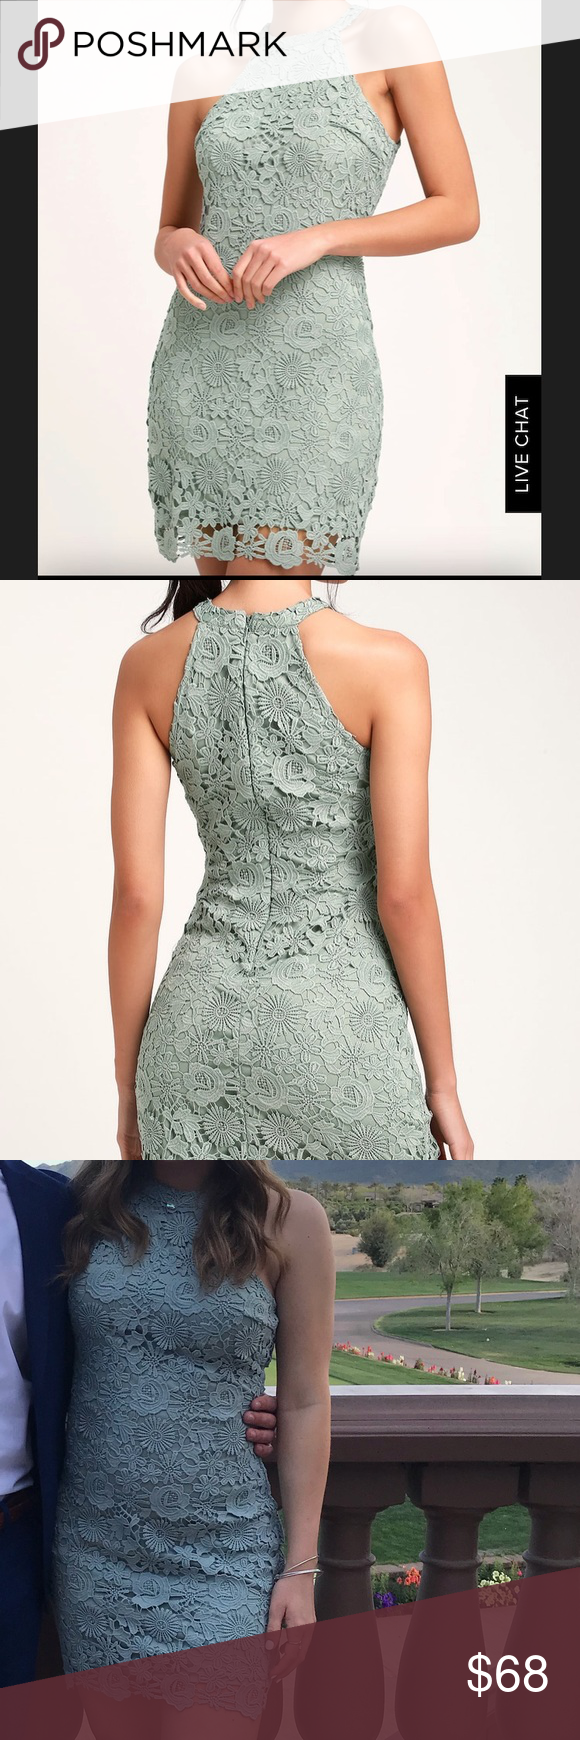 Lulu's Sage Green Dress Sage green dress from Lulus. Size medium. Only worn once to go to a wedding. Perfect condition Lulu's Dresses #sagegreendress